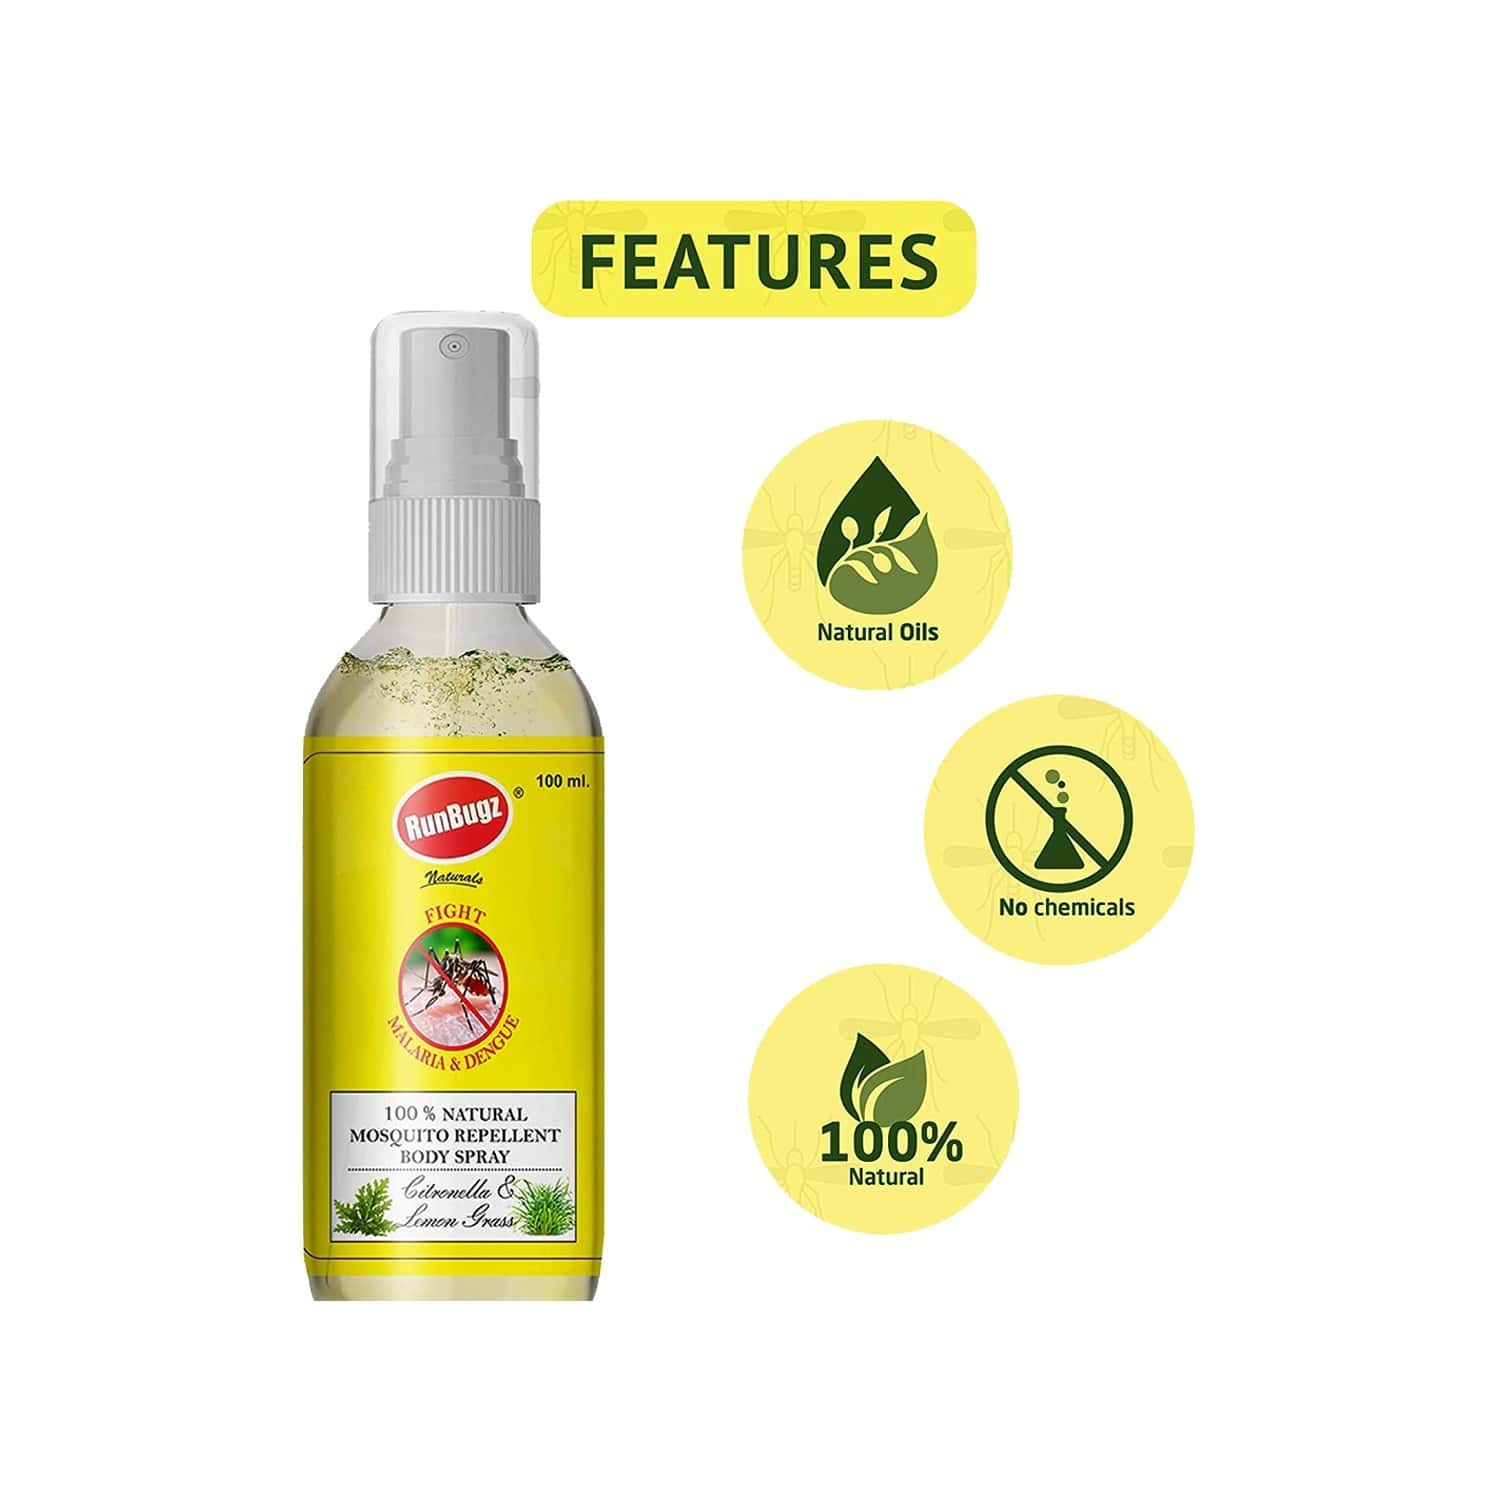 Runbugz Natural Mosquito Repellent Body Spray With Citronella And Lemon Grass 100 Ml (pack Of 1)